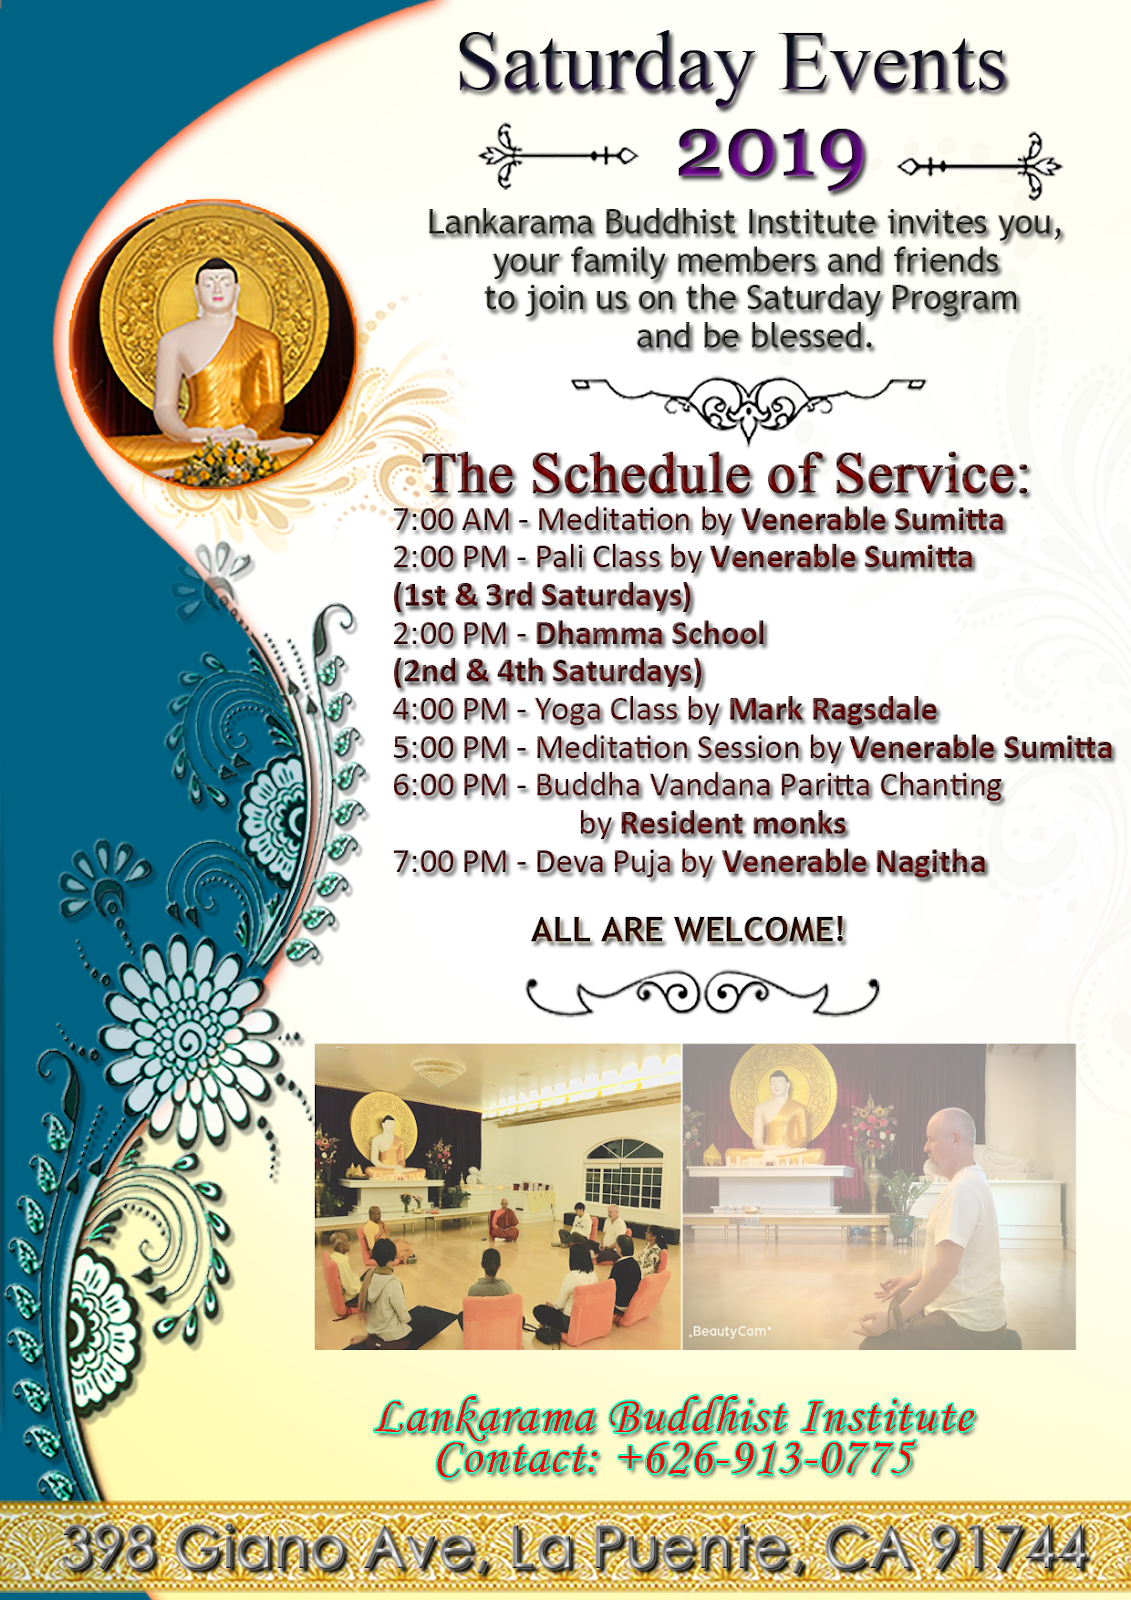 Saturday Programs at Lankarama